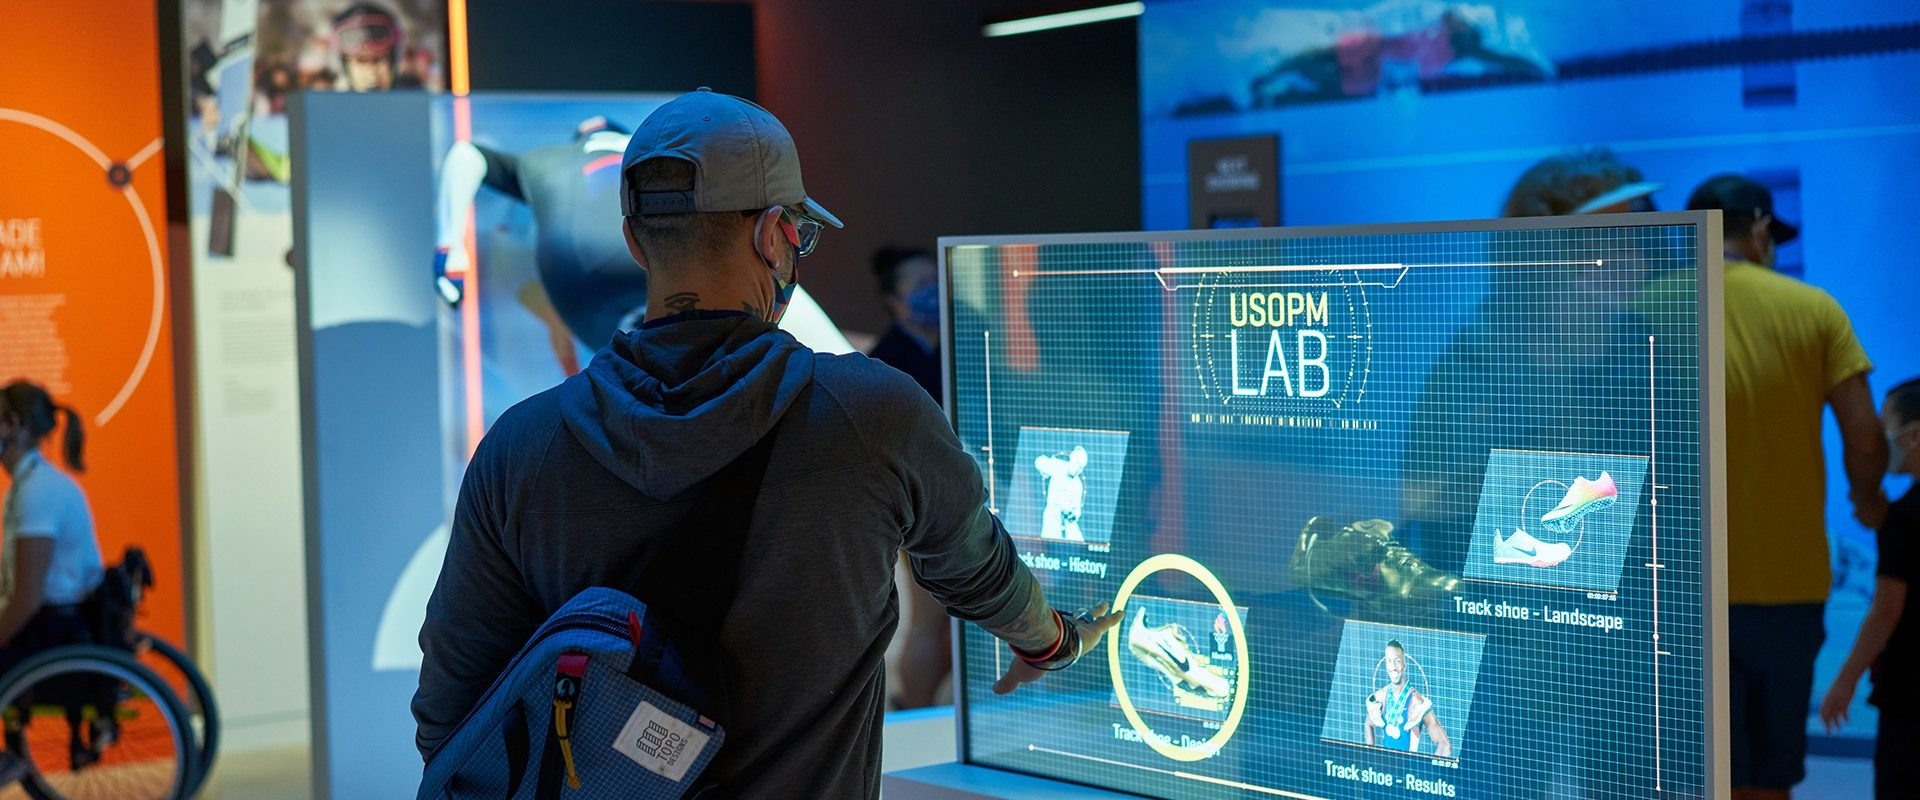 A guest interacts with an exhibit in The Lab